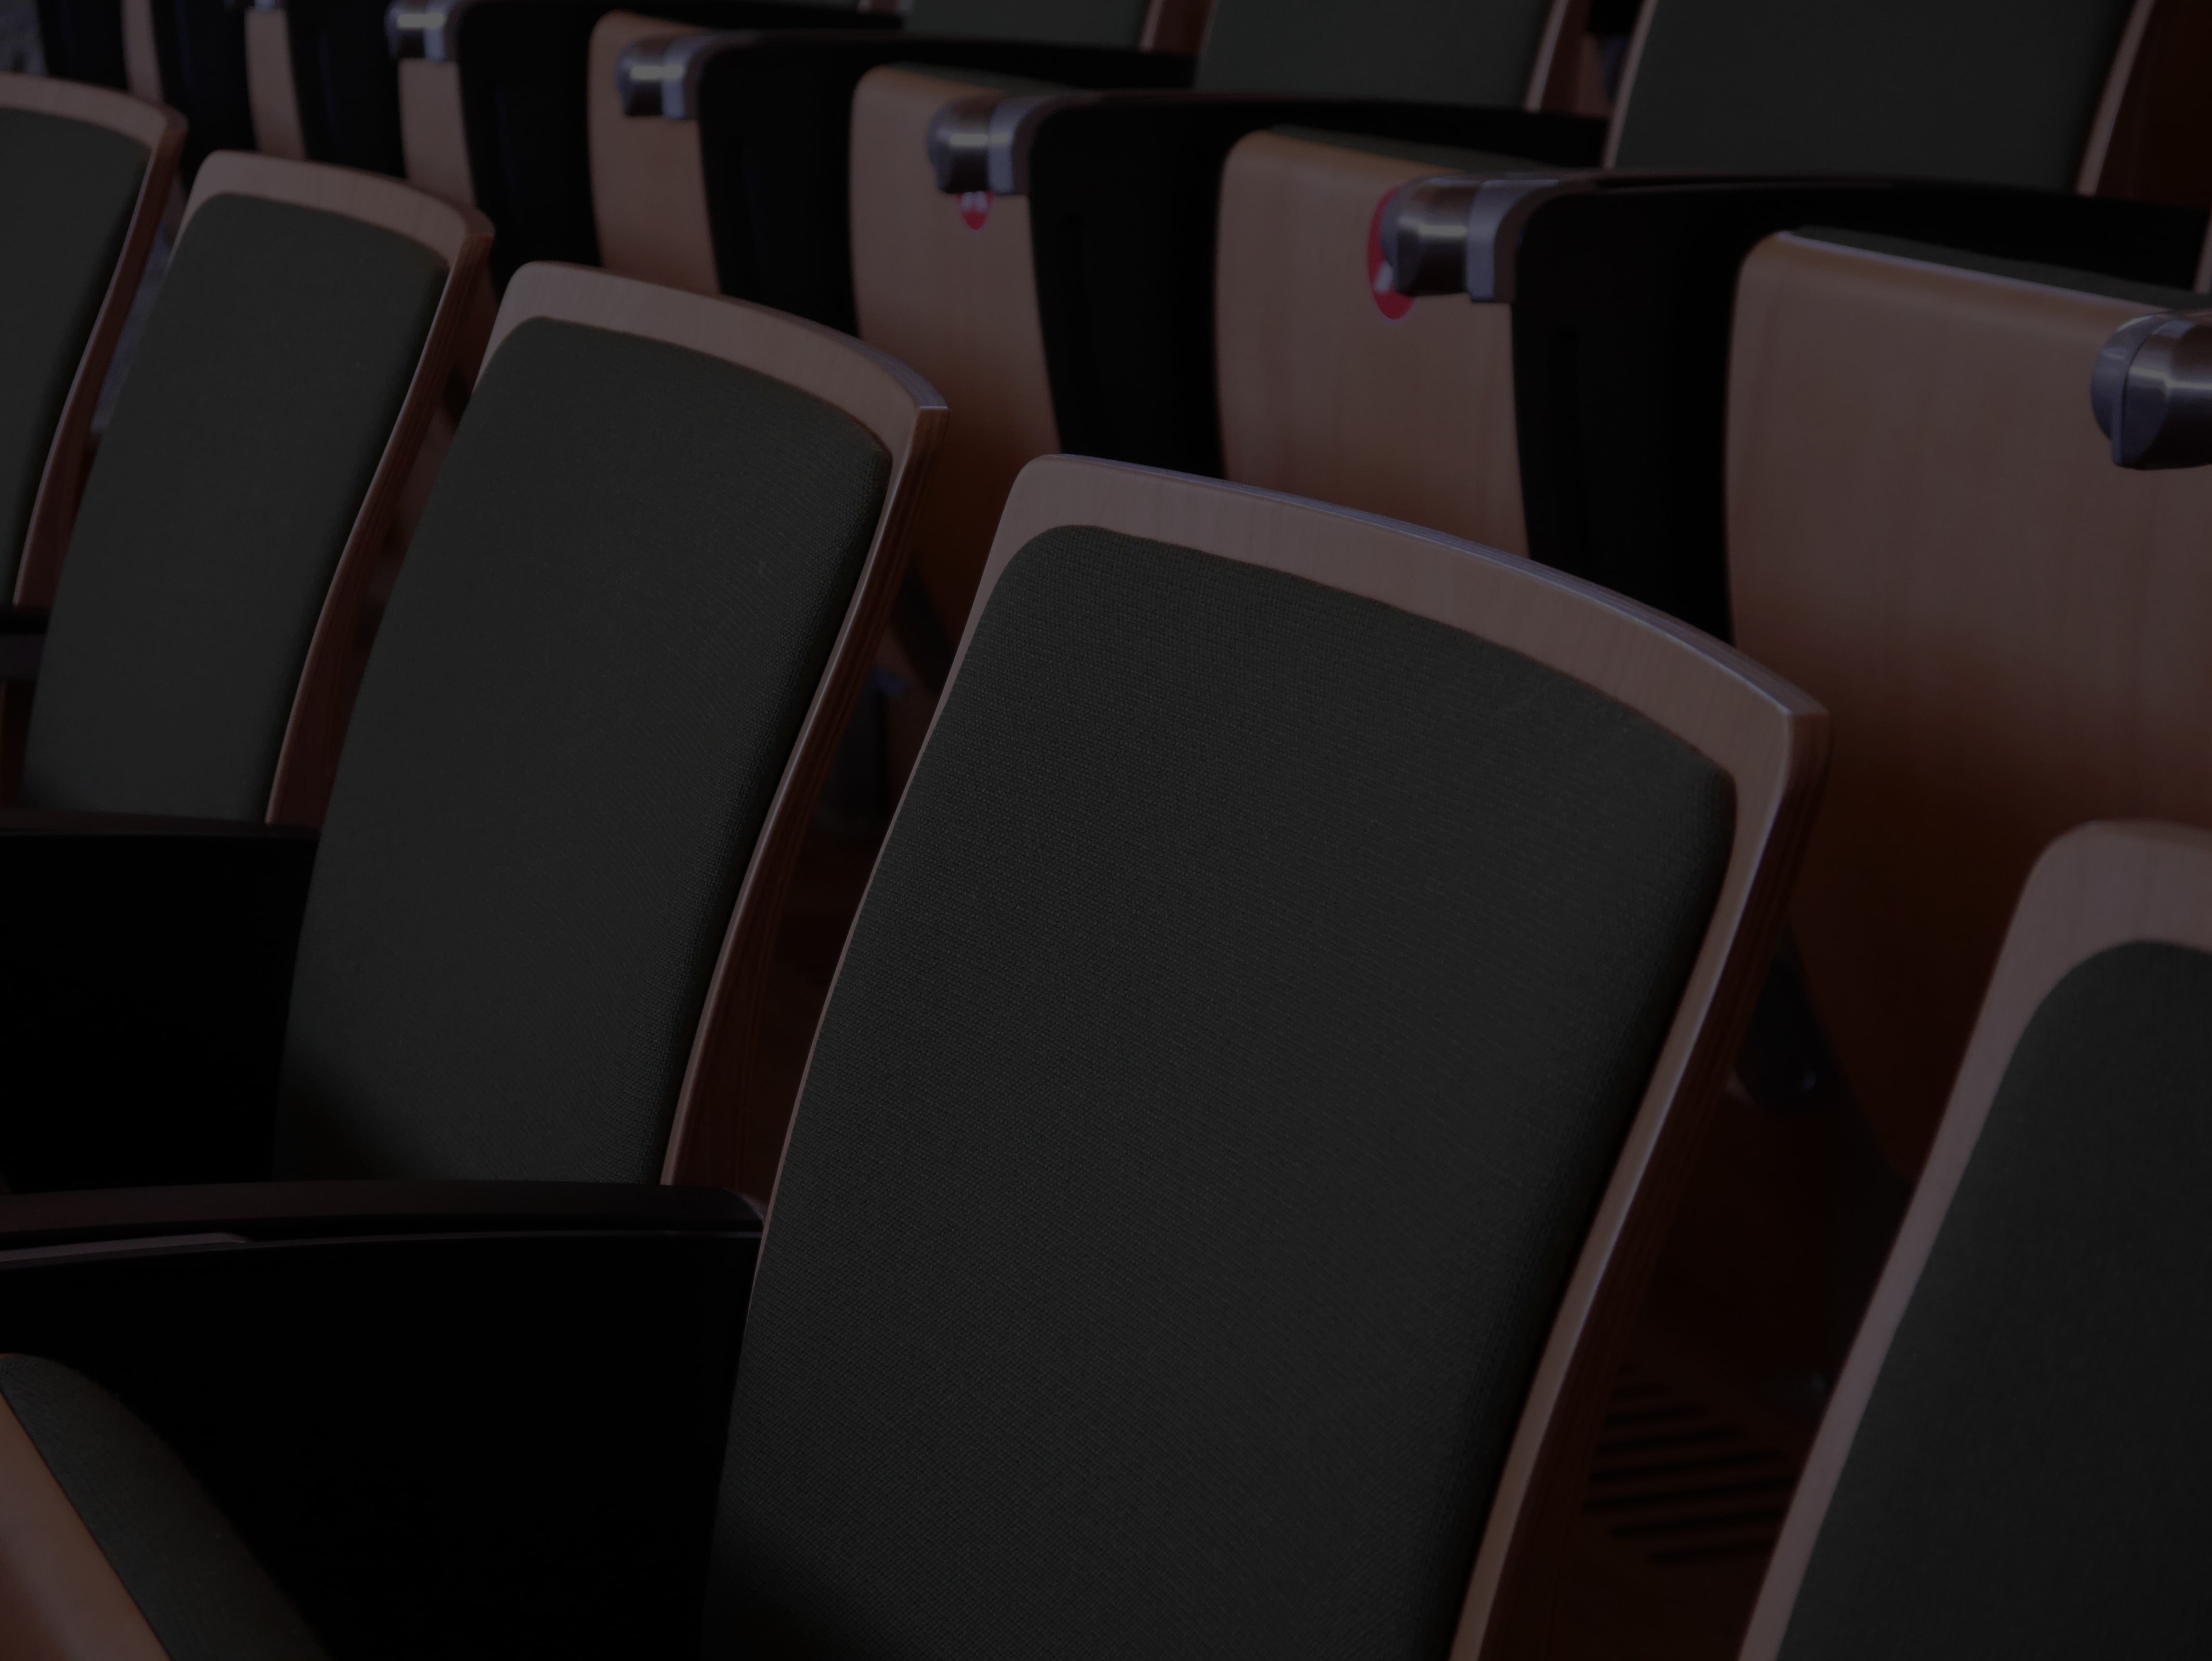 Right positioned close up of empty audience seating, blush toned glow visible against the unoccupied rows